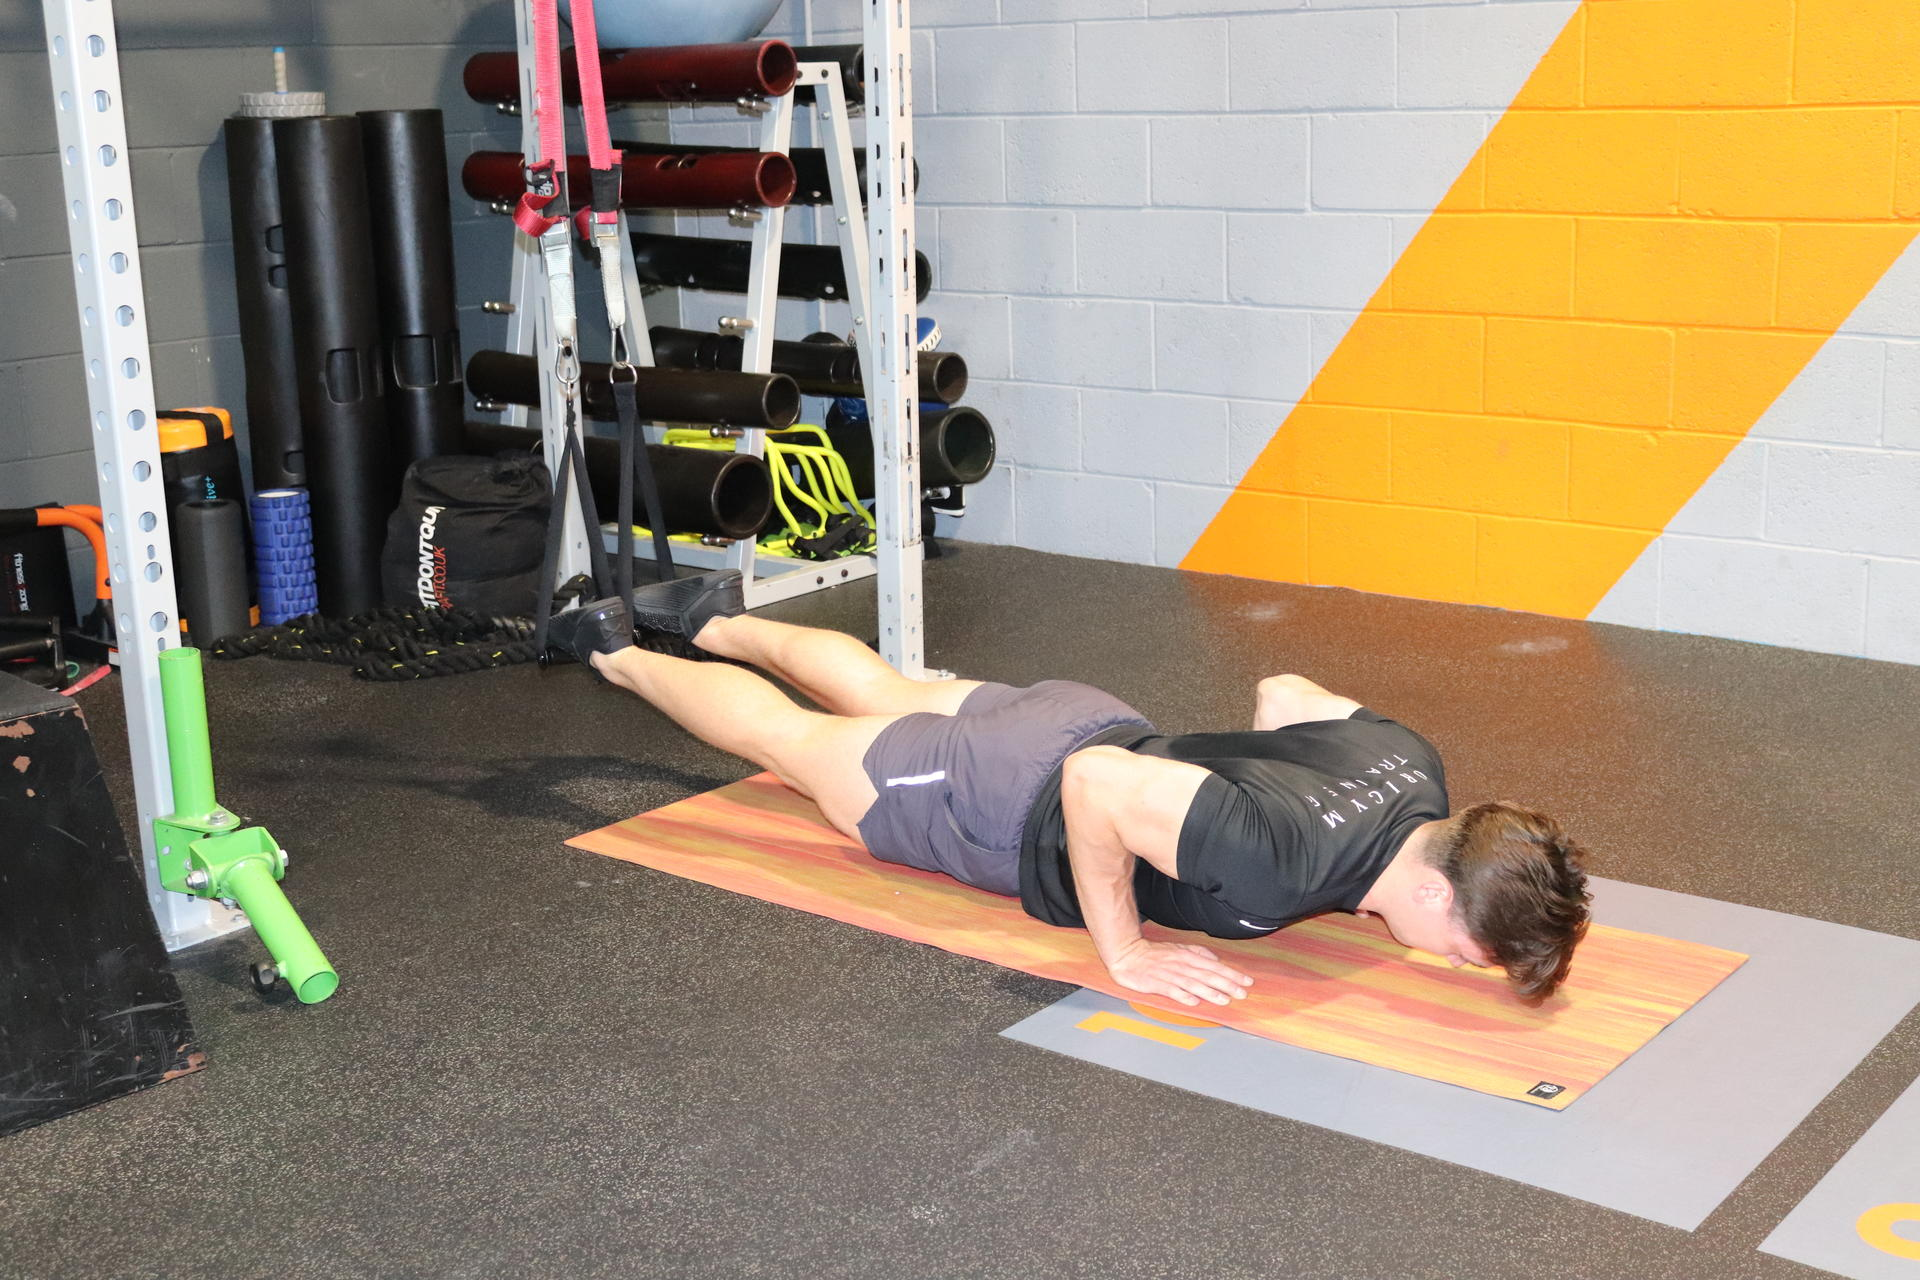 Trx training exercises for beginners image